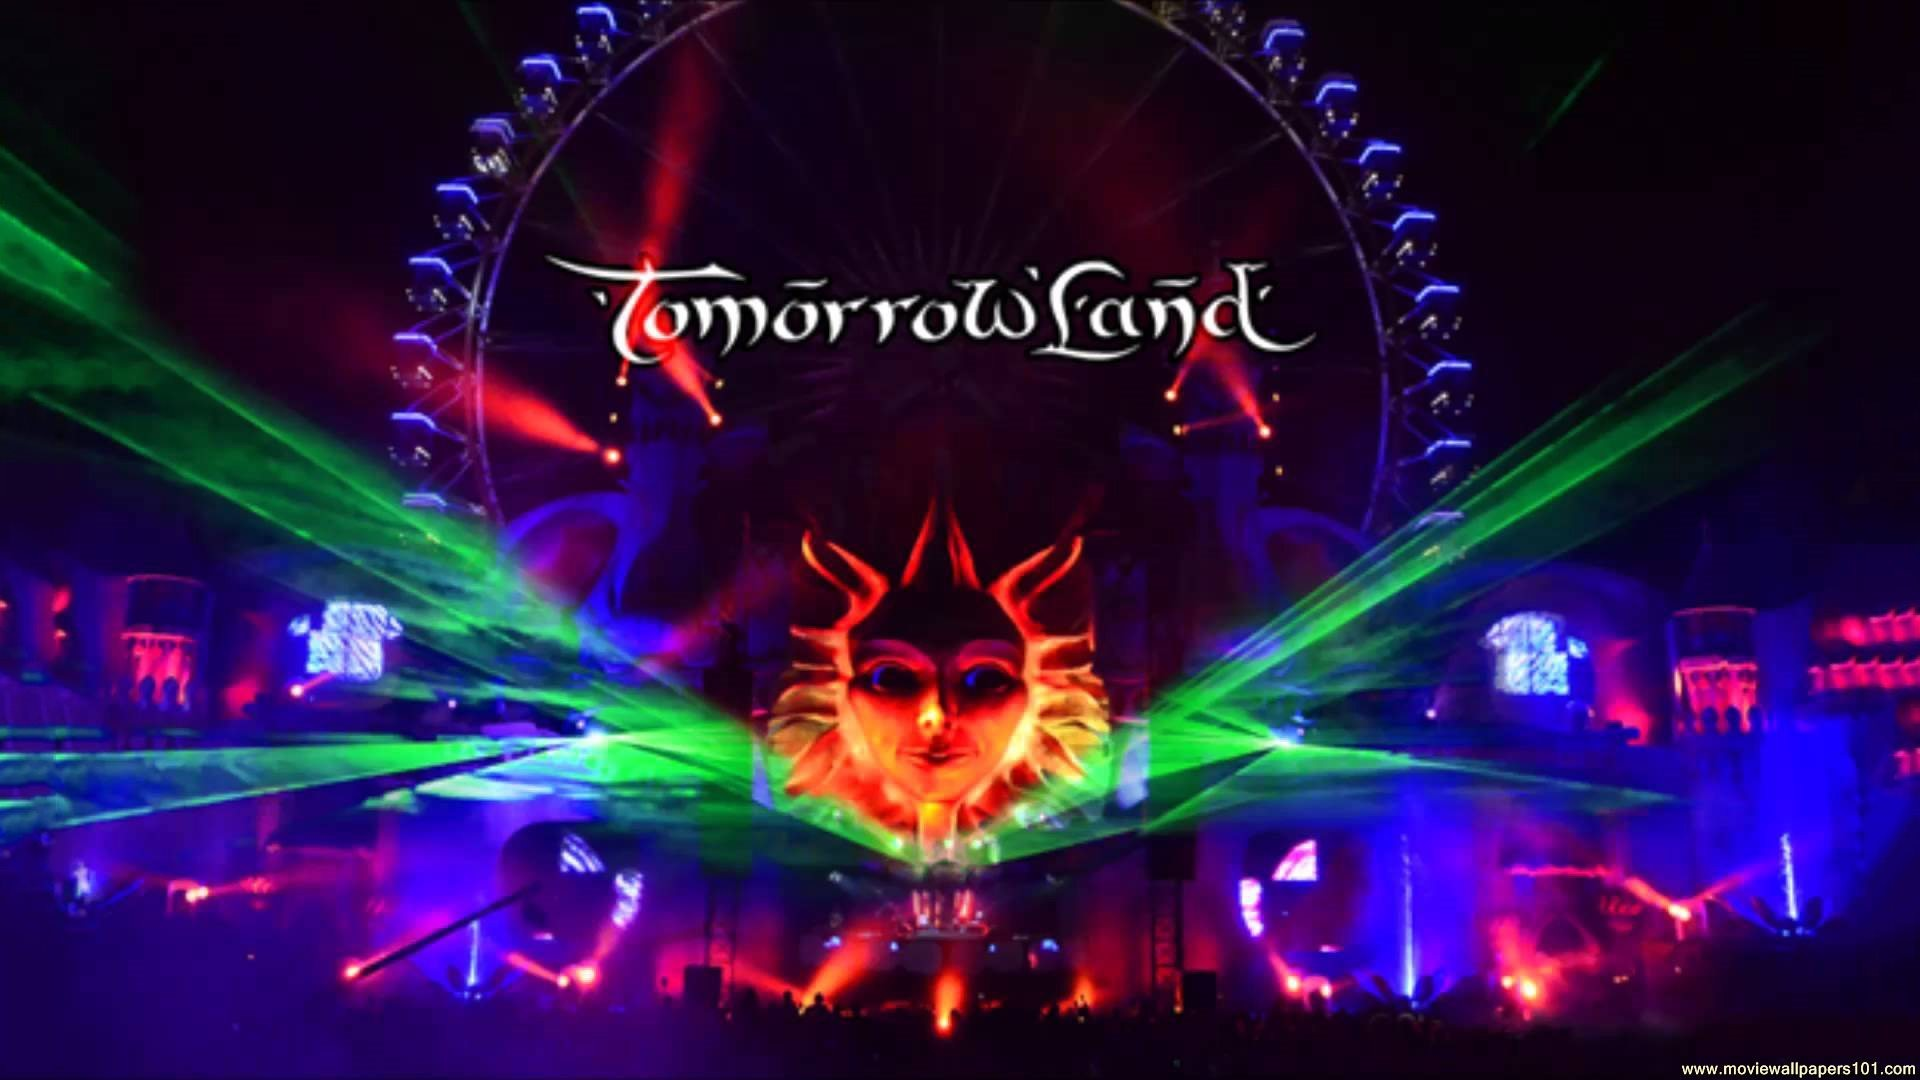 Tomorrowland Logo Wallpapers ①